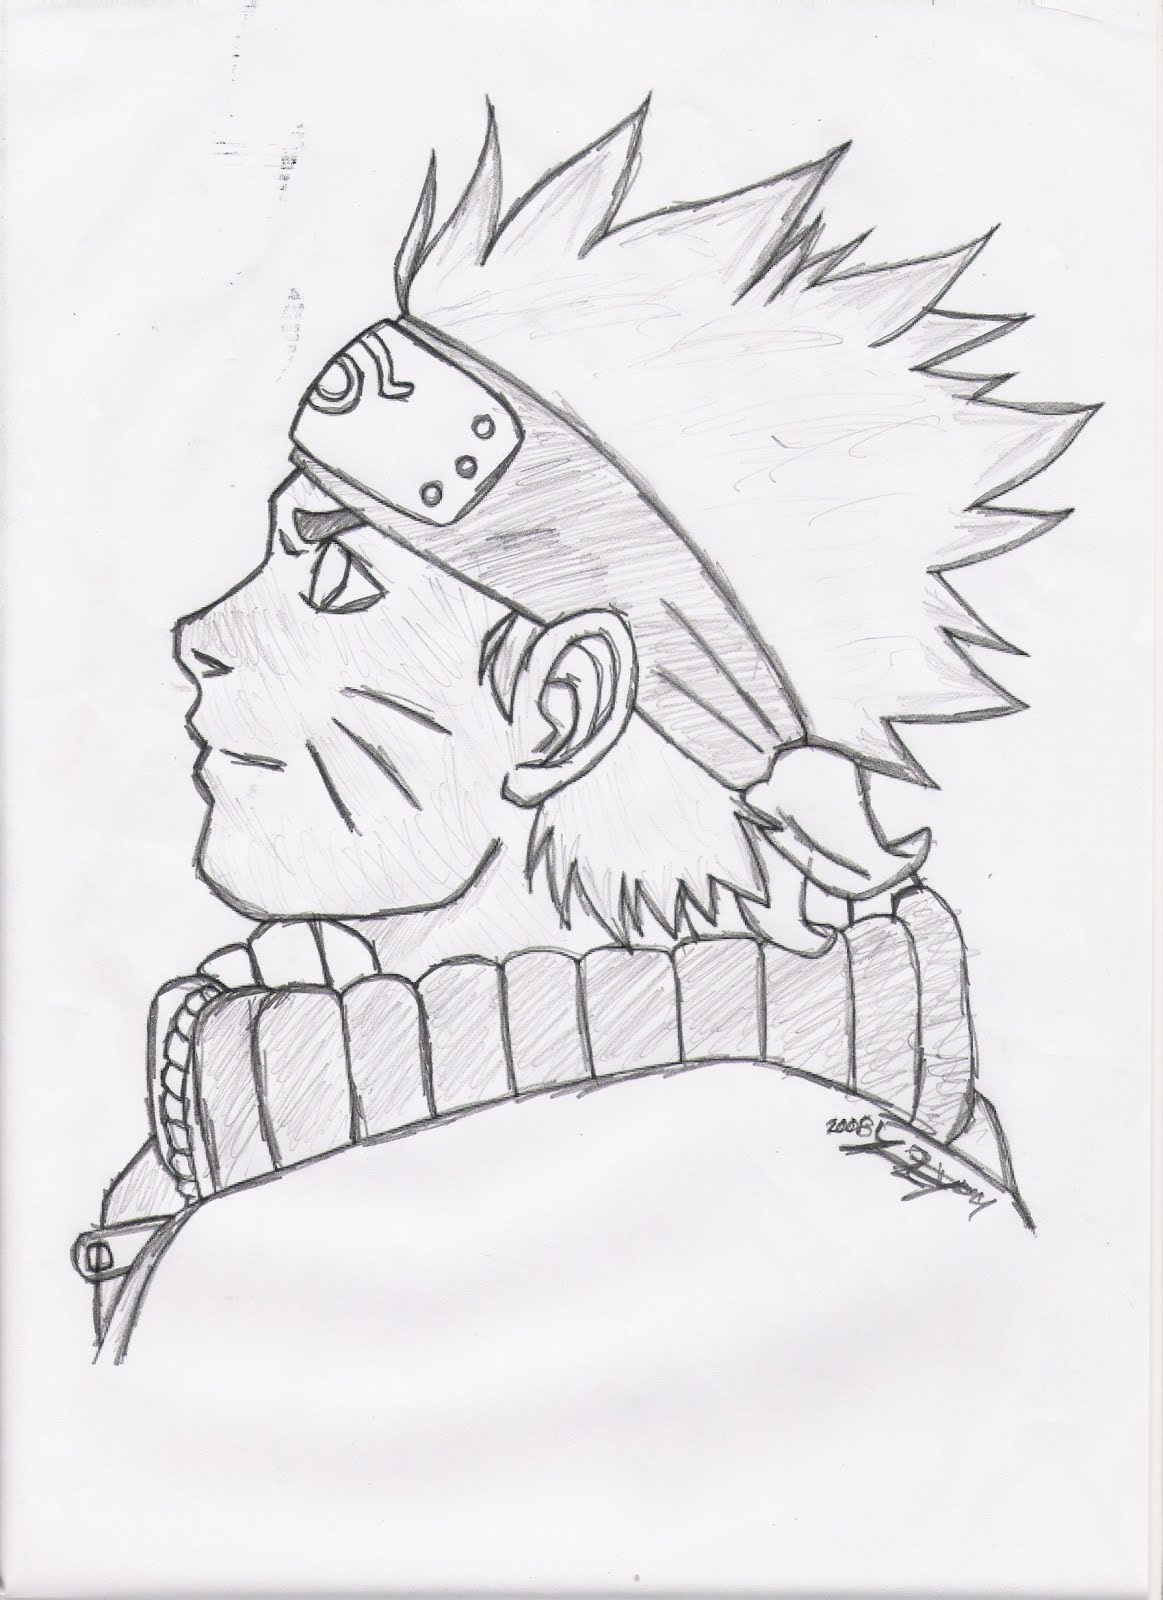 Best Wallpaper Naruto Sketch - Naruto%2BDrawing%2BPictures-788764  Image.jpg